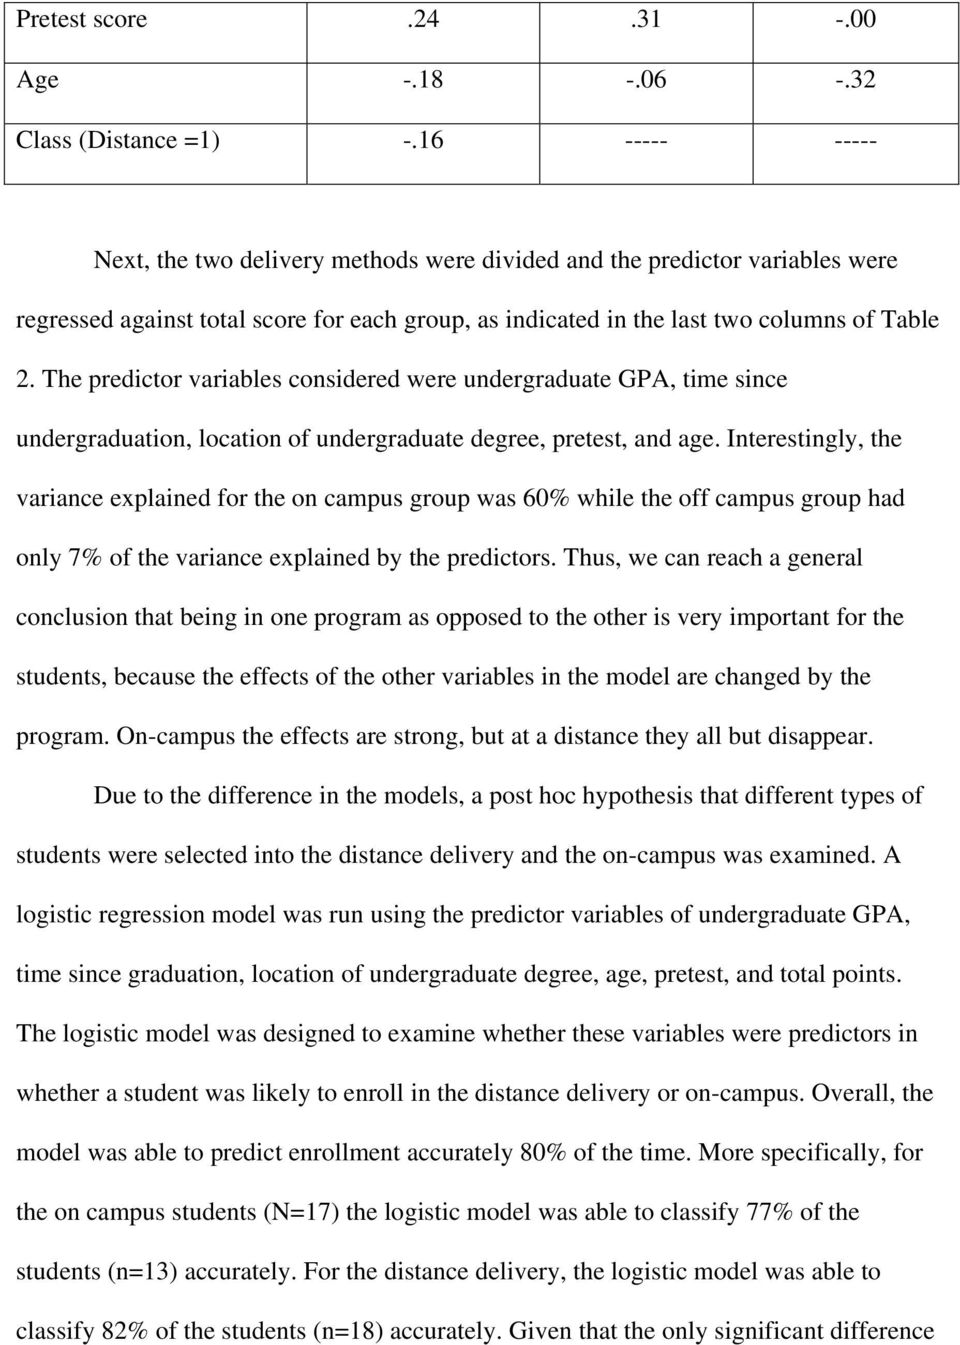 The predictor variables considered were undergraduate GPA, time since undergraduation, location of undergraduate degree, pretest, and age.